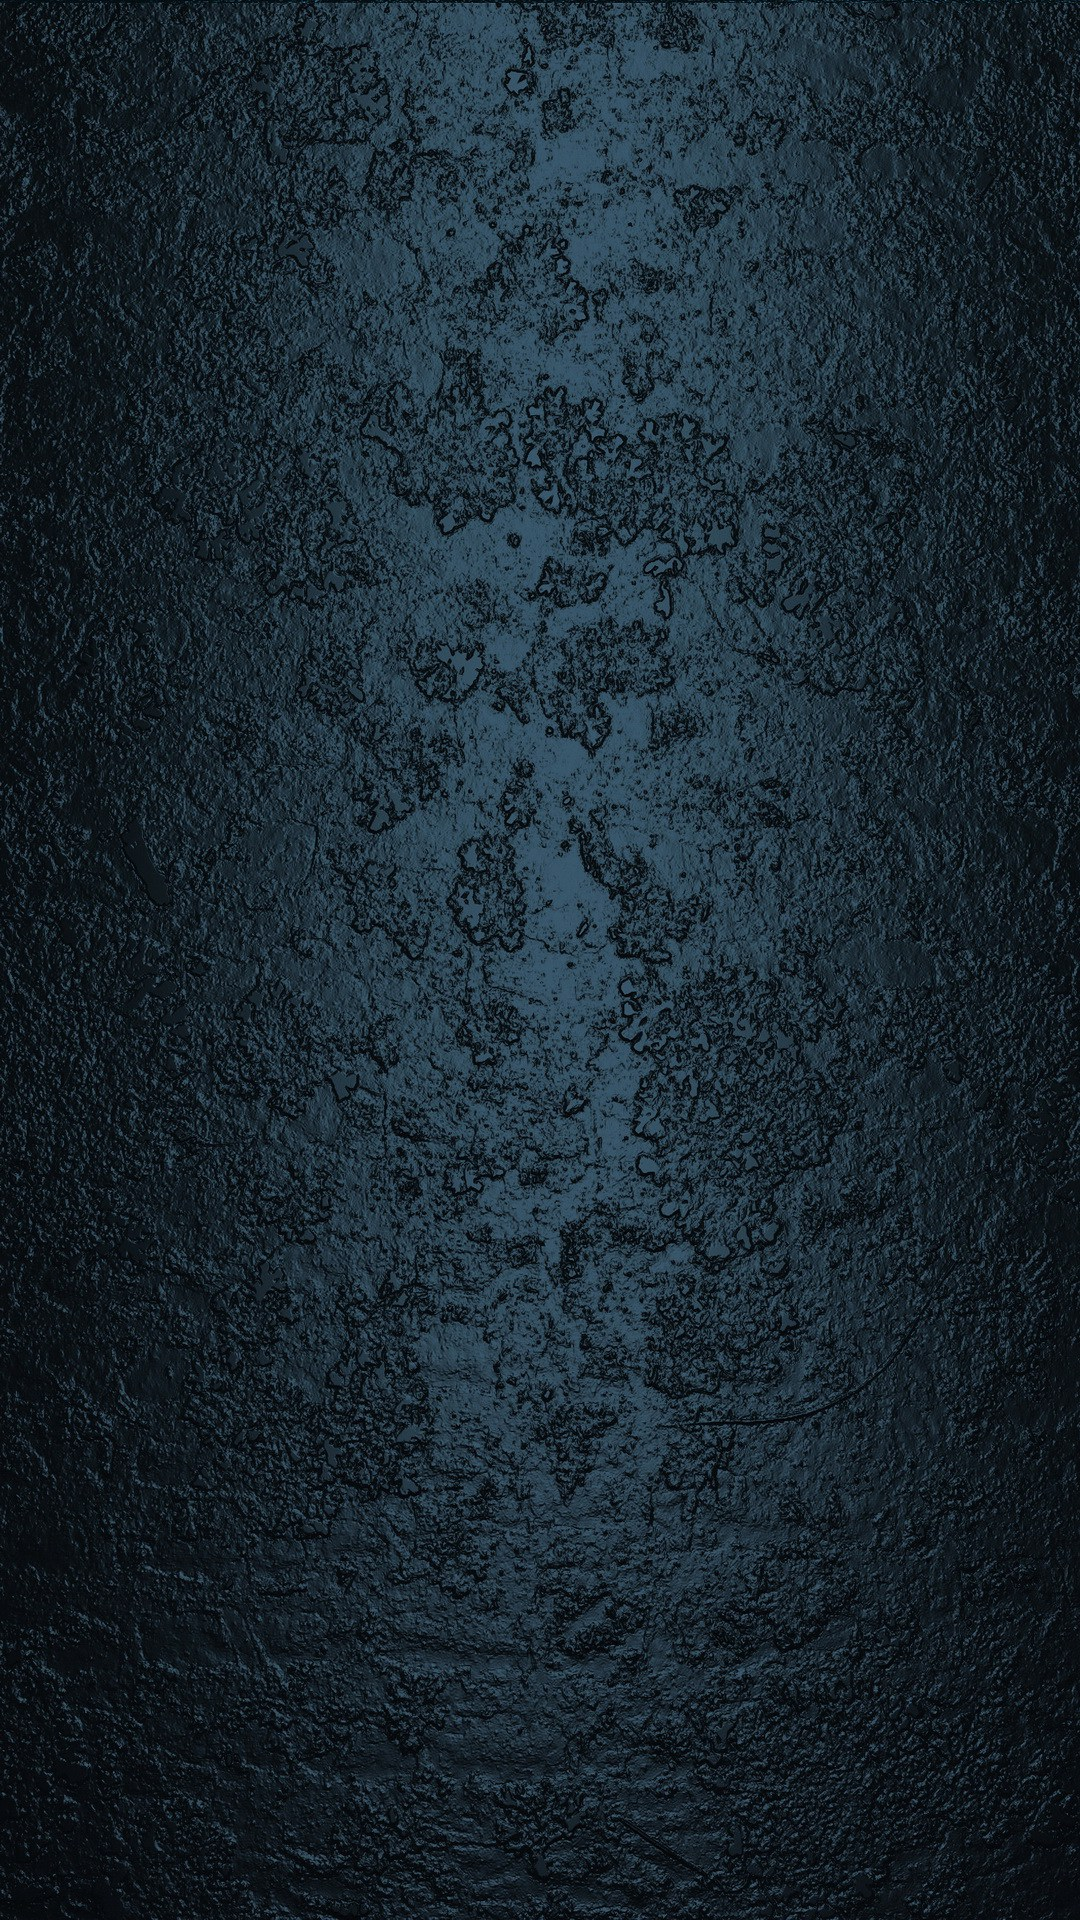 Blue Metallic High Defination iPhone Wallpapers 1080x1920